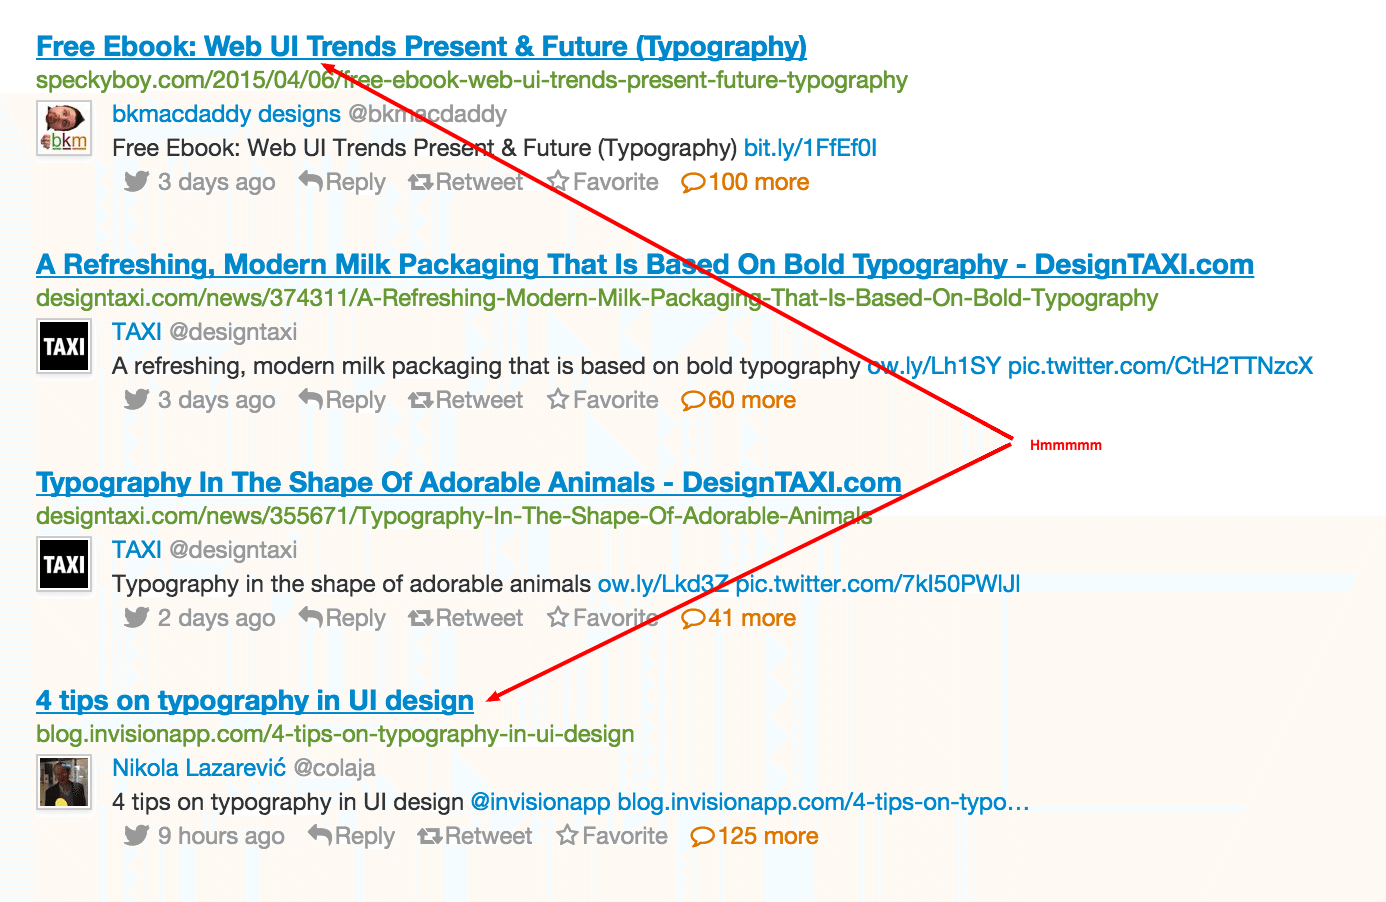 Topsy results for typography